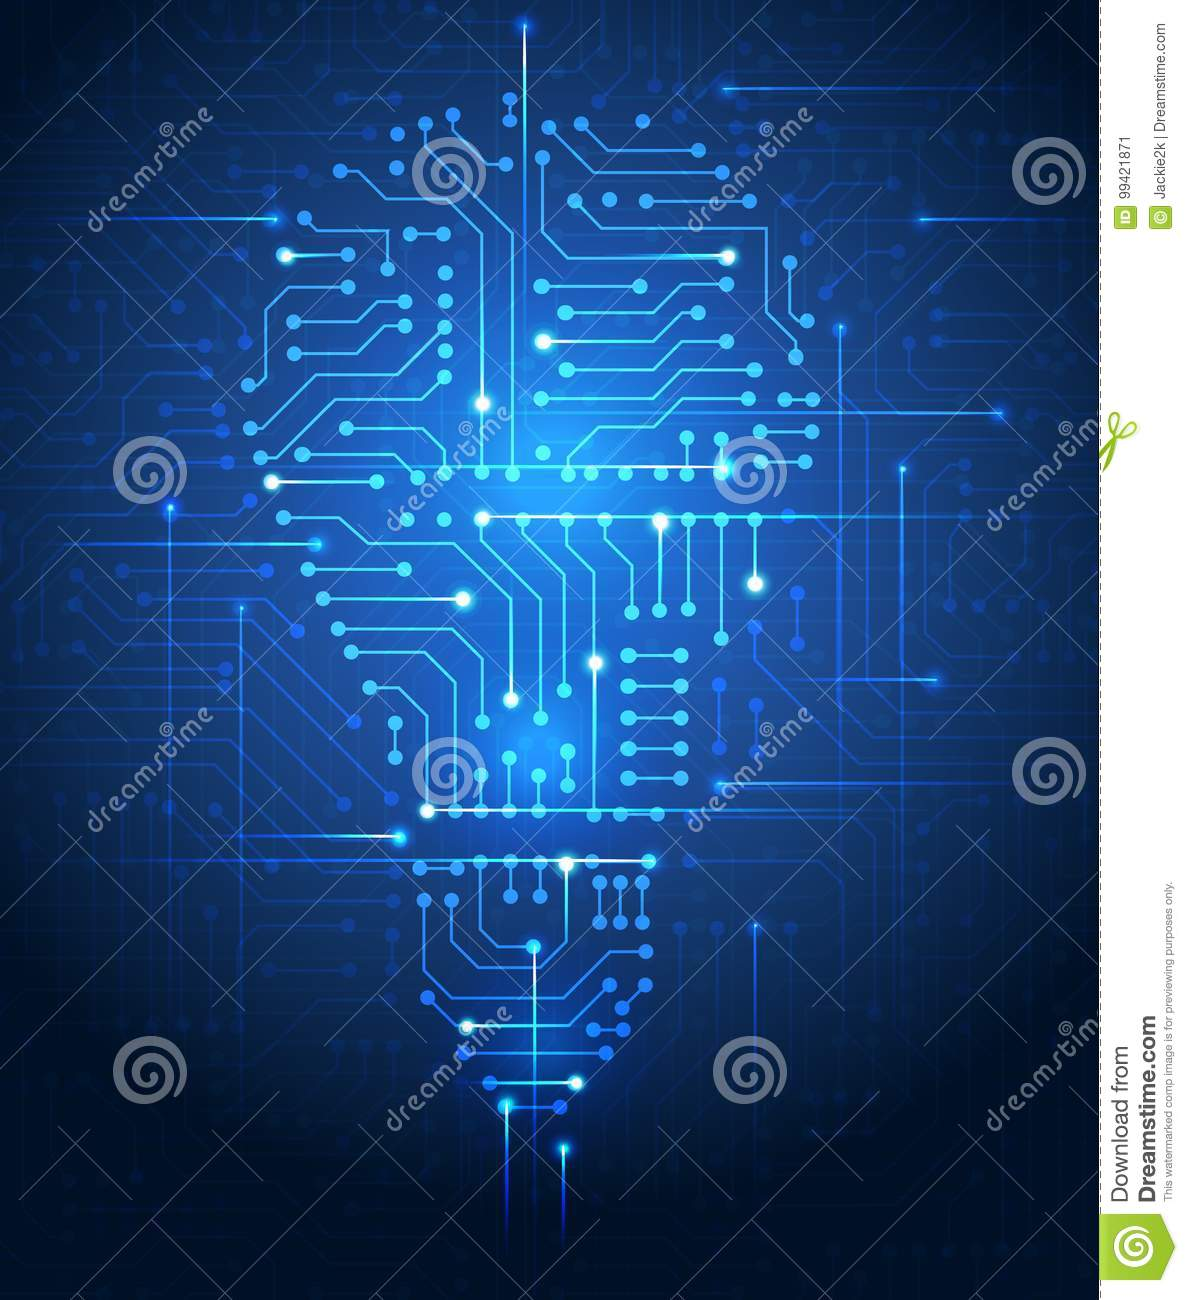 Light Bulb Silhouette On Circuit Board Background Stock